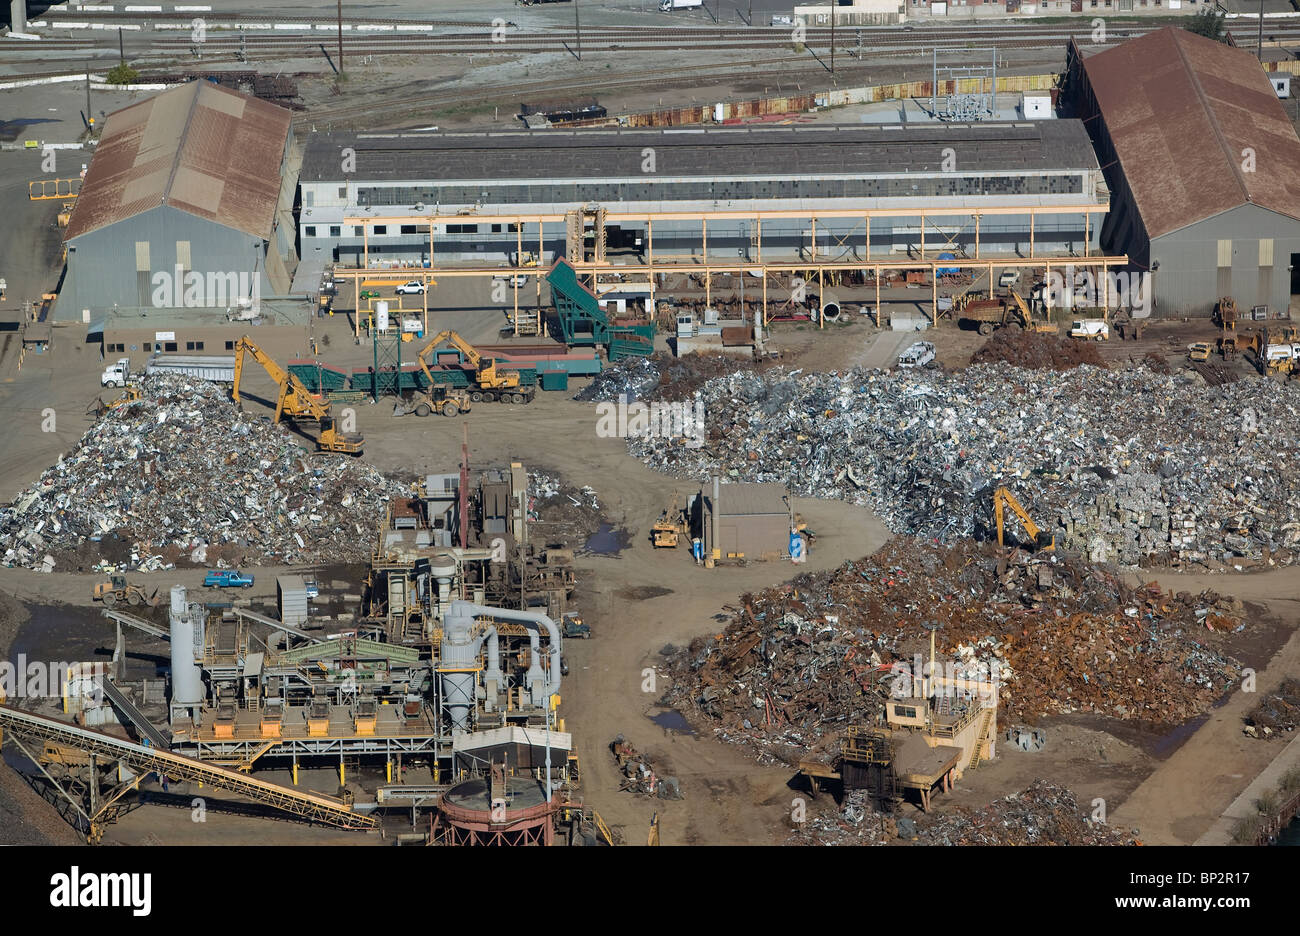 Auto Recycler Stock Photos Auto Recycler Stock Images Alamy - Schnitzer scrap yard